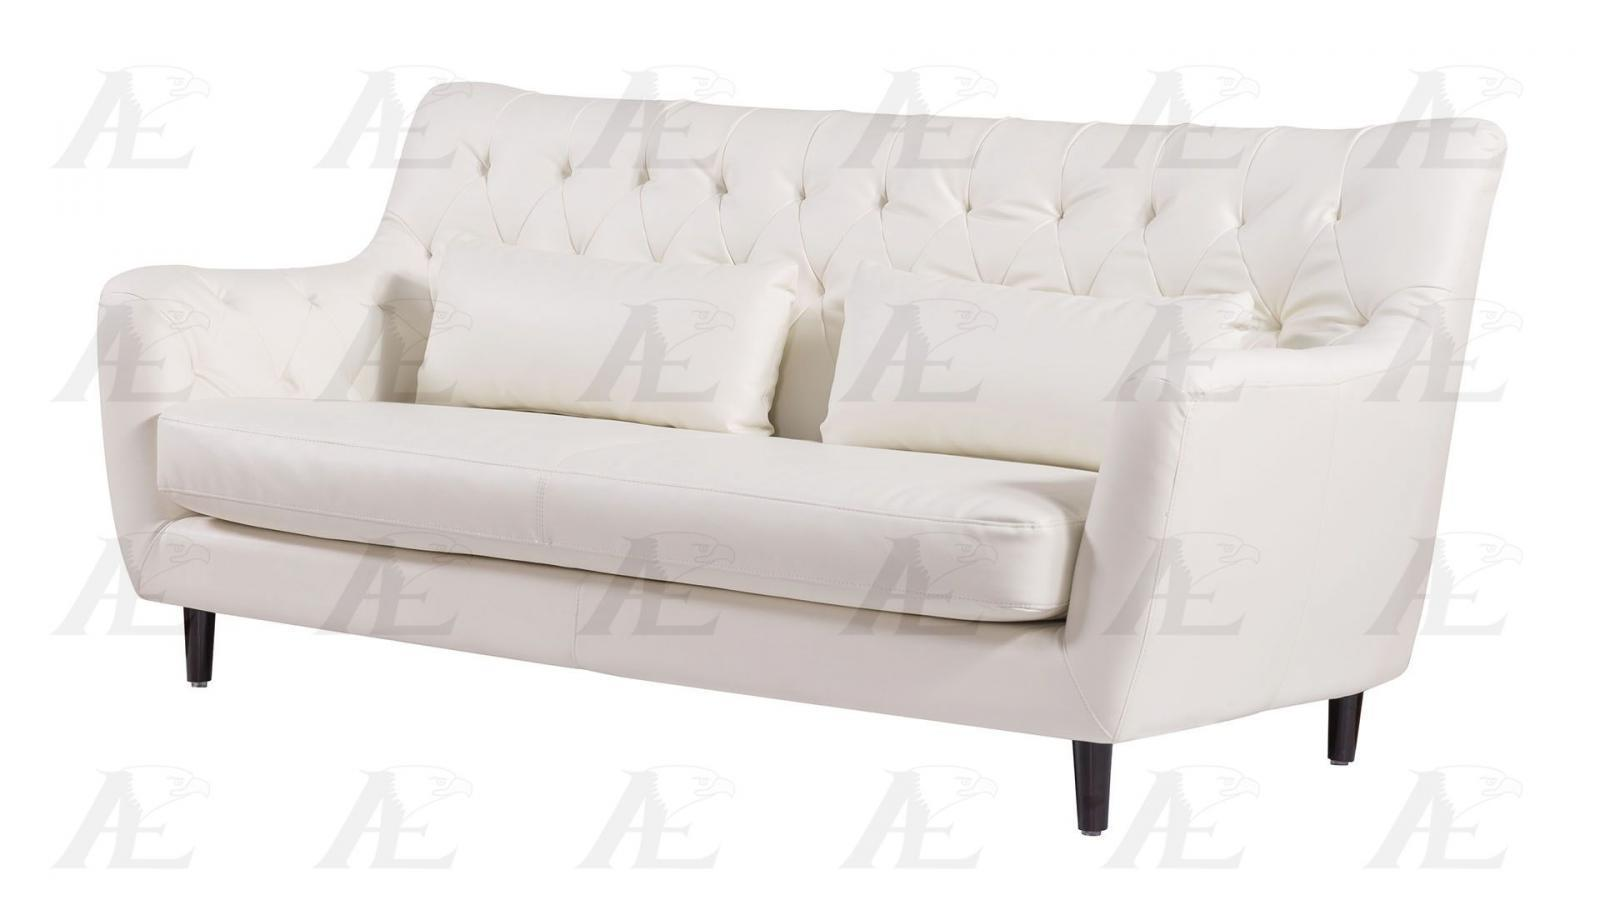 American Eagle Ae346 Iv Ivory Sofa Loveseat And Chair Faux Leather Set 3pcs Sofas Loveseats